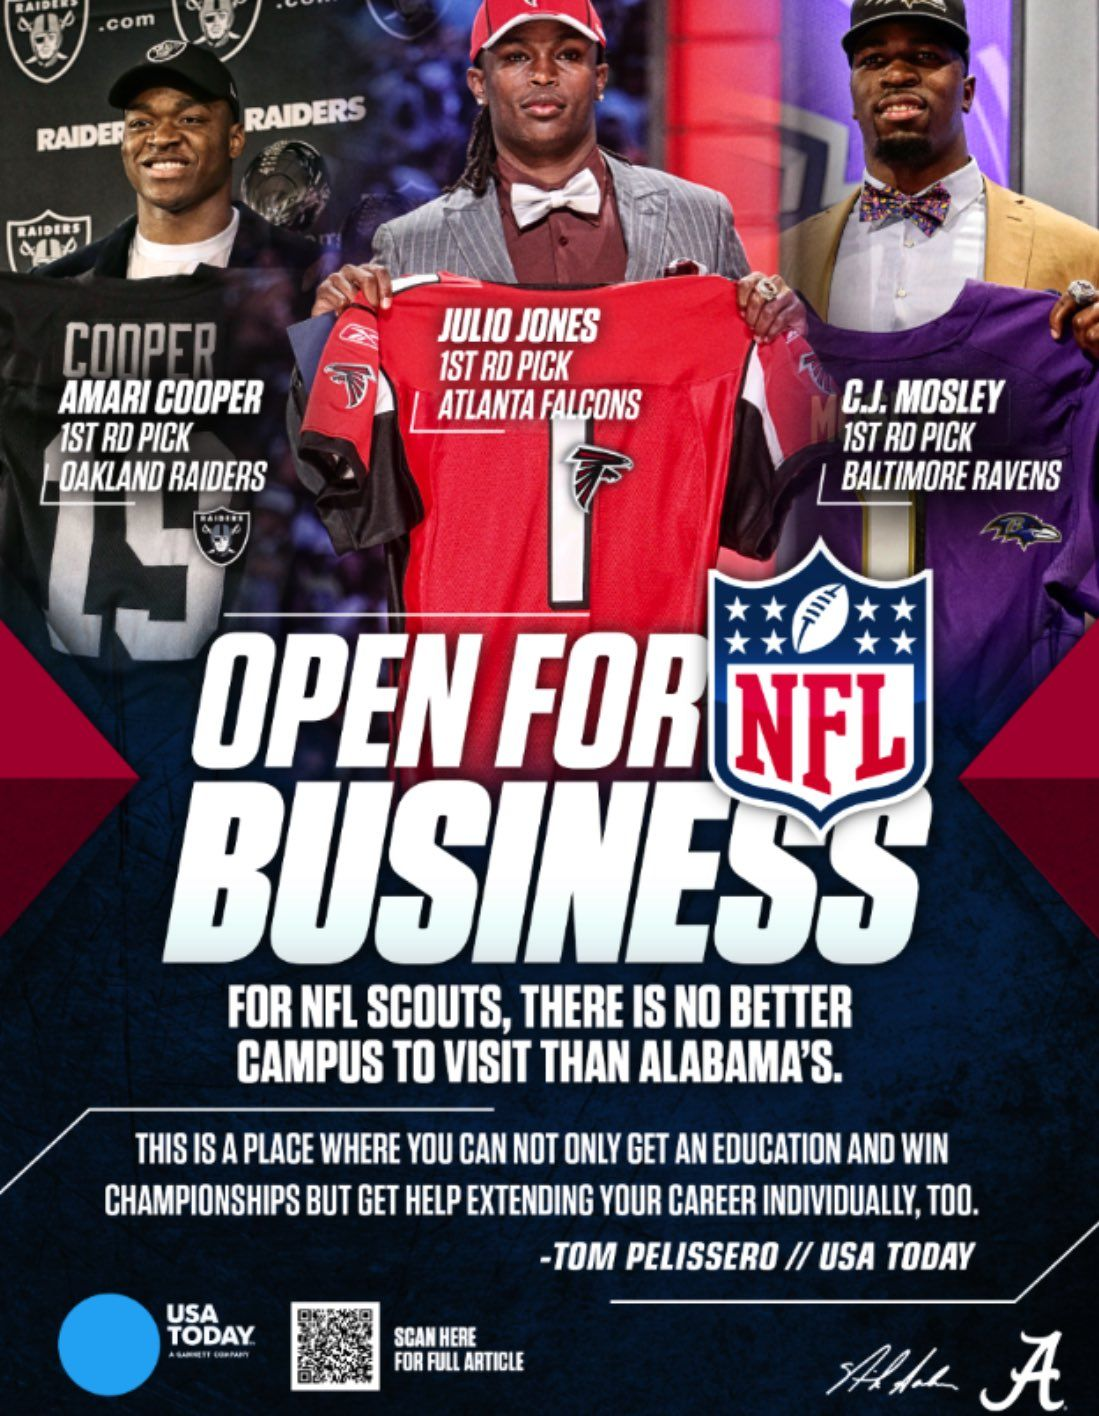 Bama is a place where you can not only get a education and win championships but get help extending your career individually too